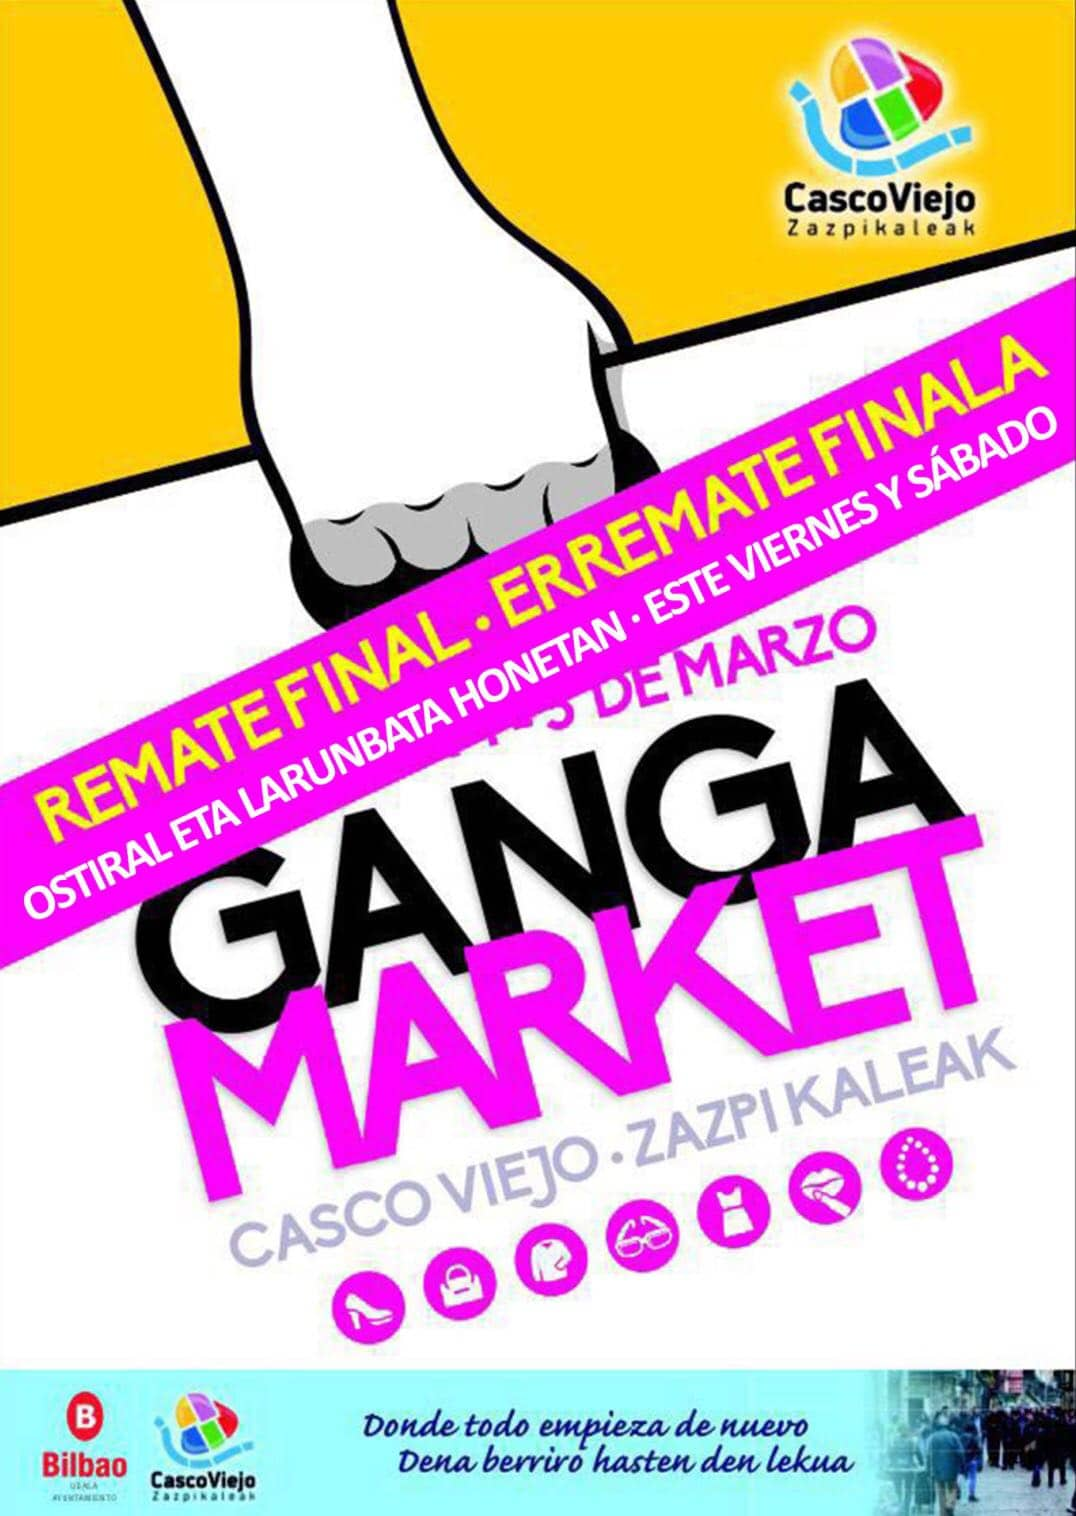 Remate Final Ganga Market Casco Viejo